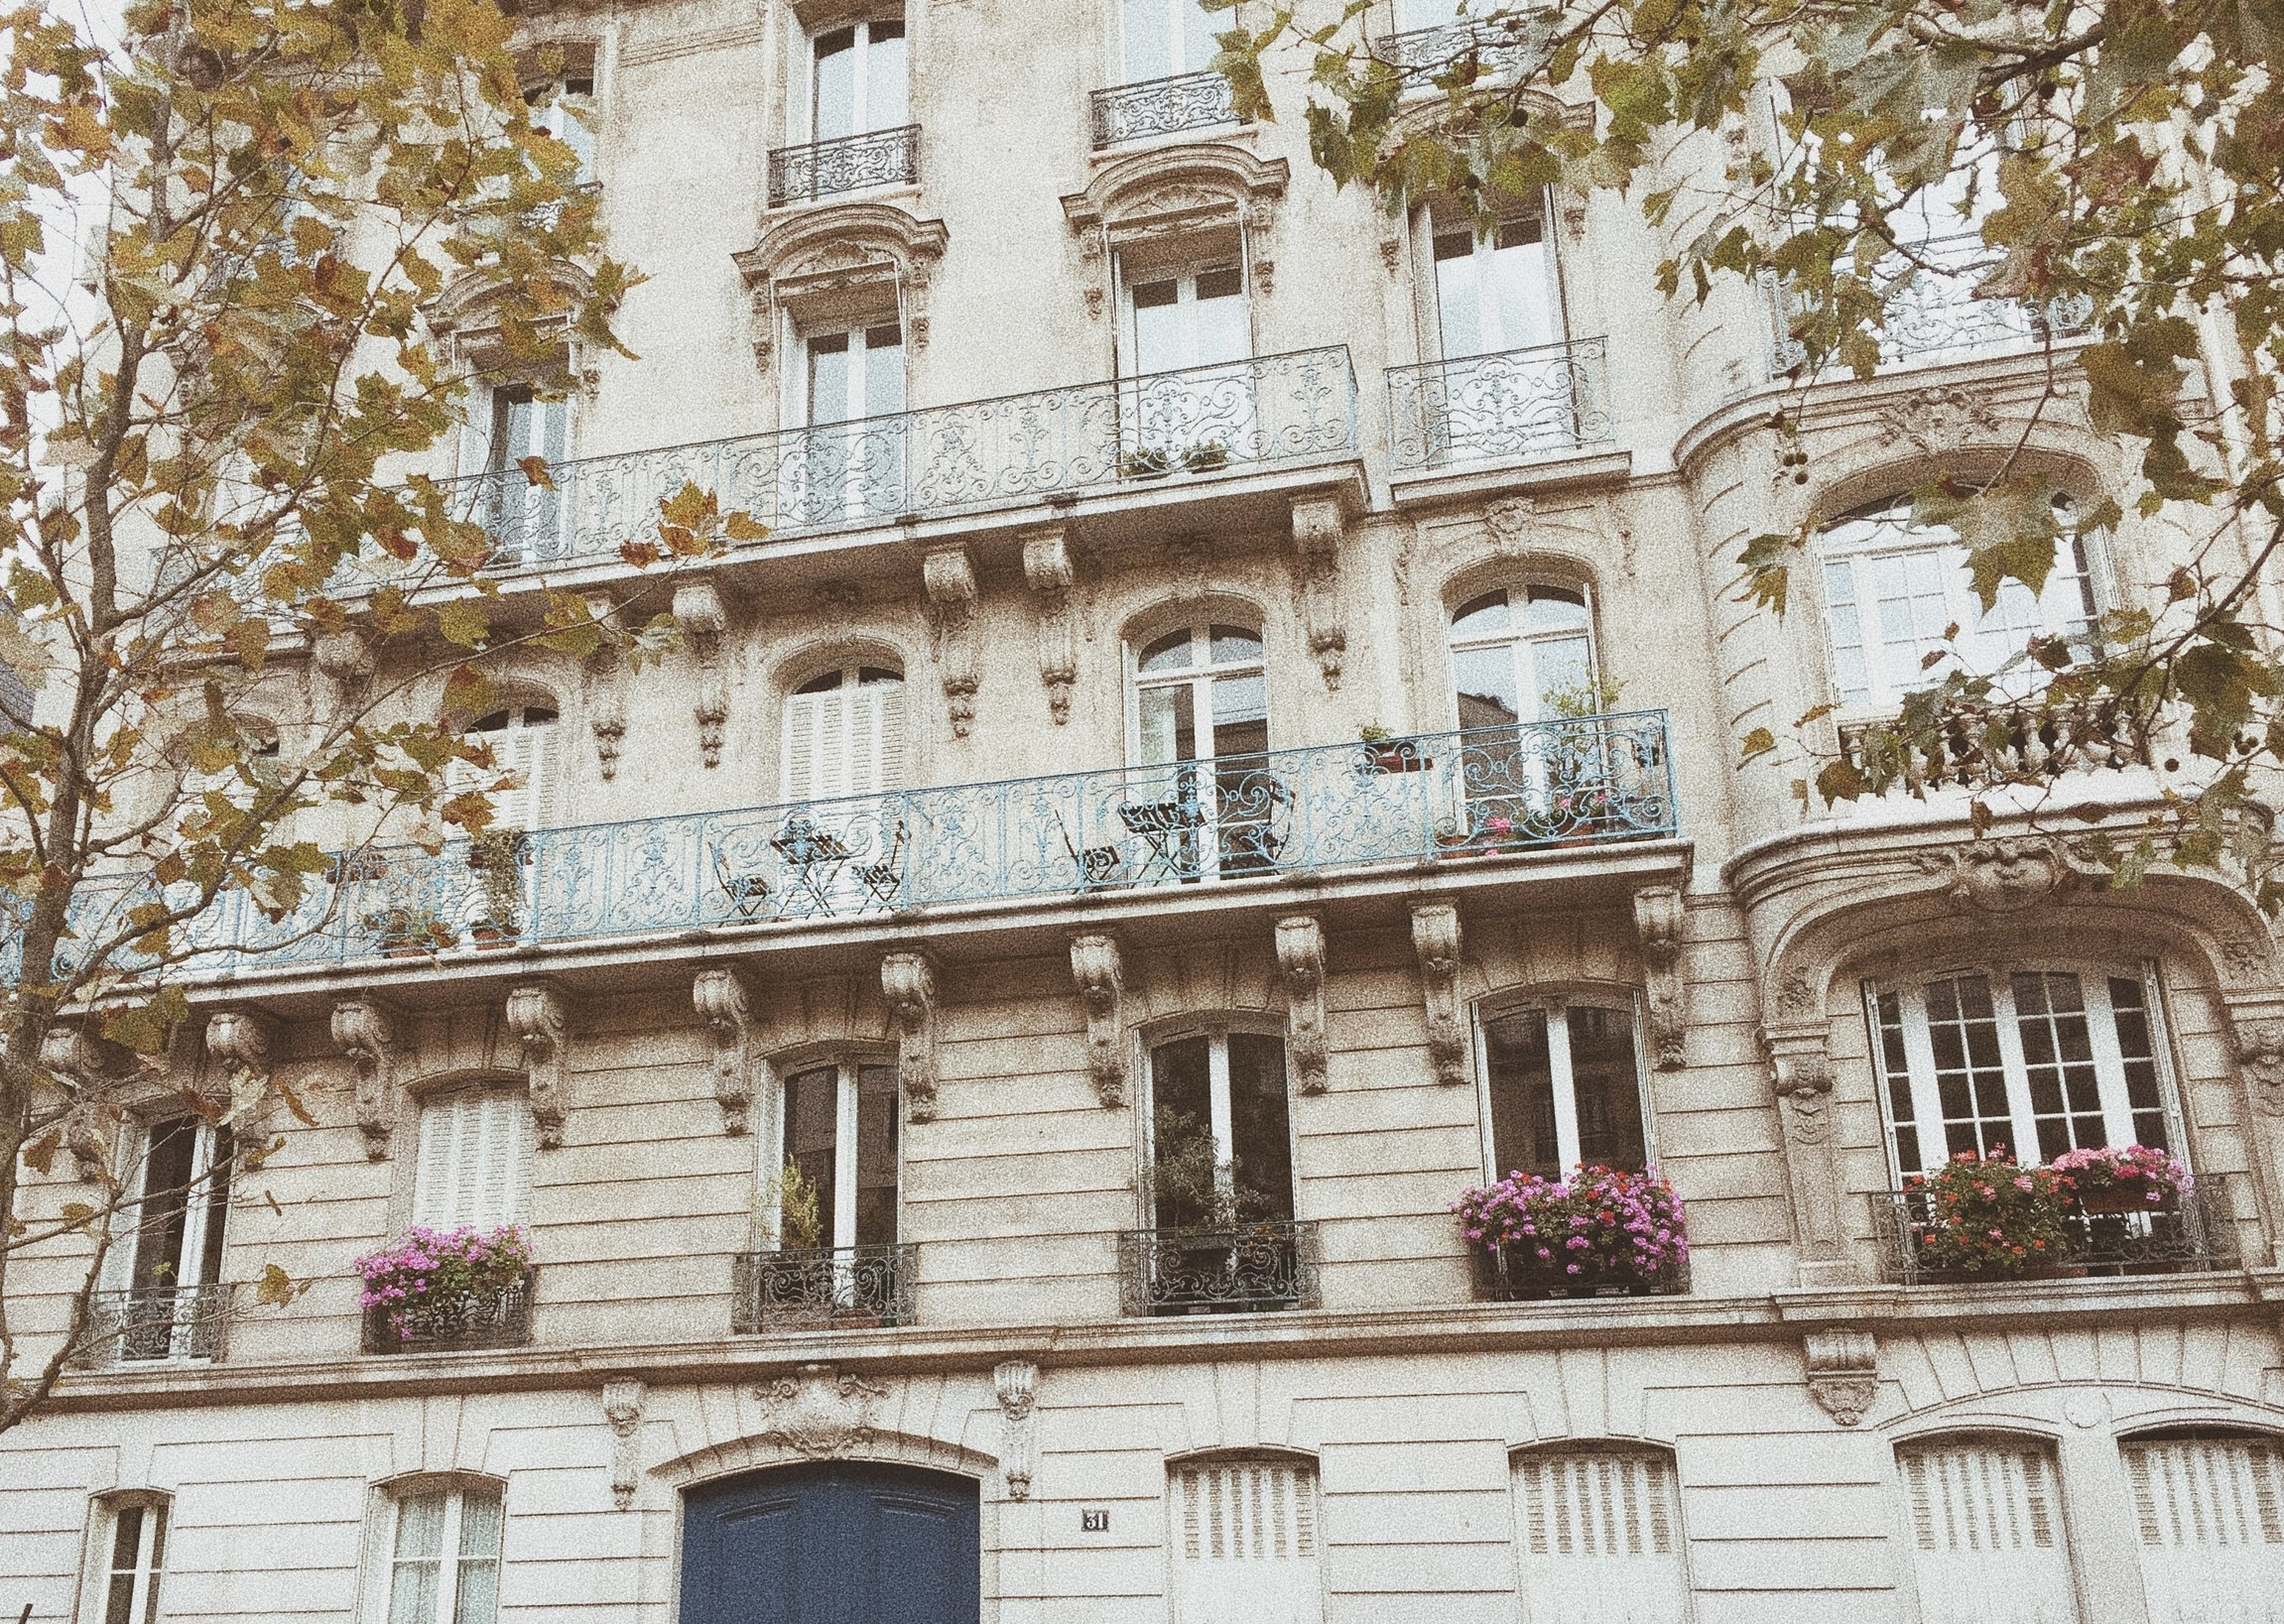 architecture_design_lemarais_paris_france_travelguide_vacationguide_tourist